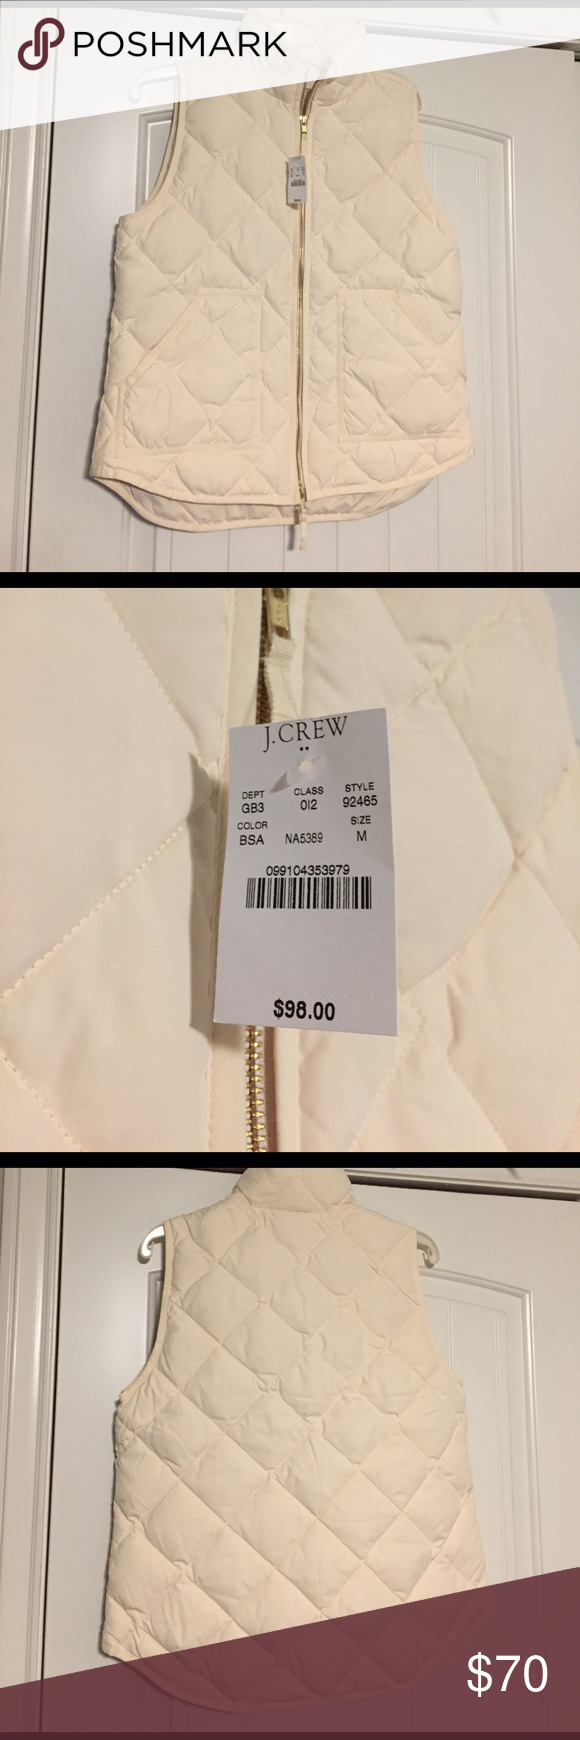 J Crew cream puffer vest medium J Crew puffer vest, medium, gold zipper, new with tags! No trades please. J Crew Jackets & Coats Puffers